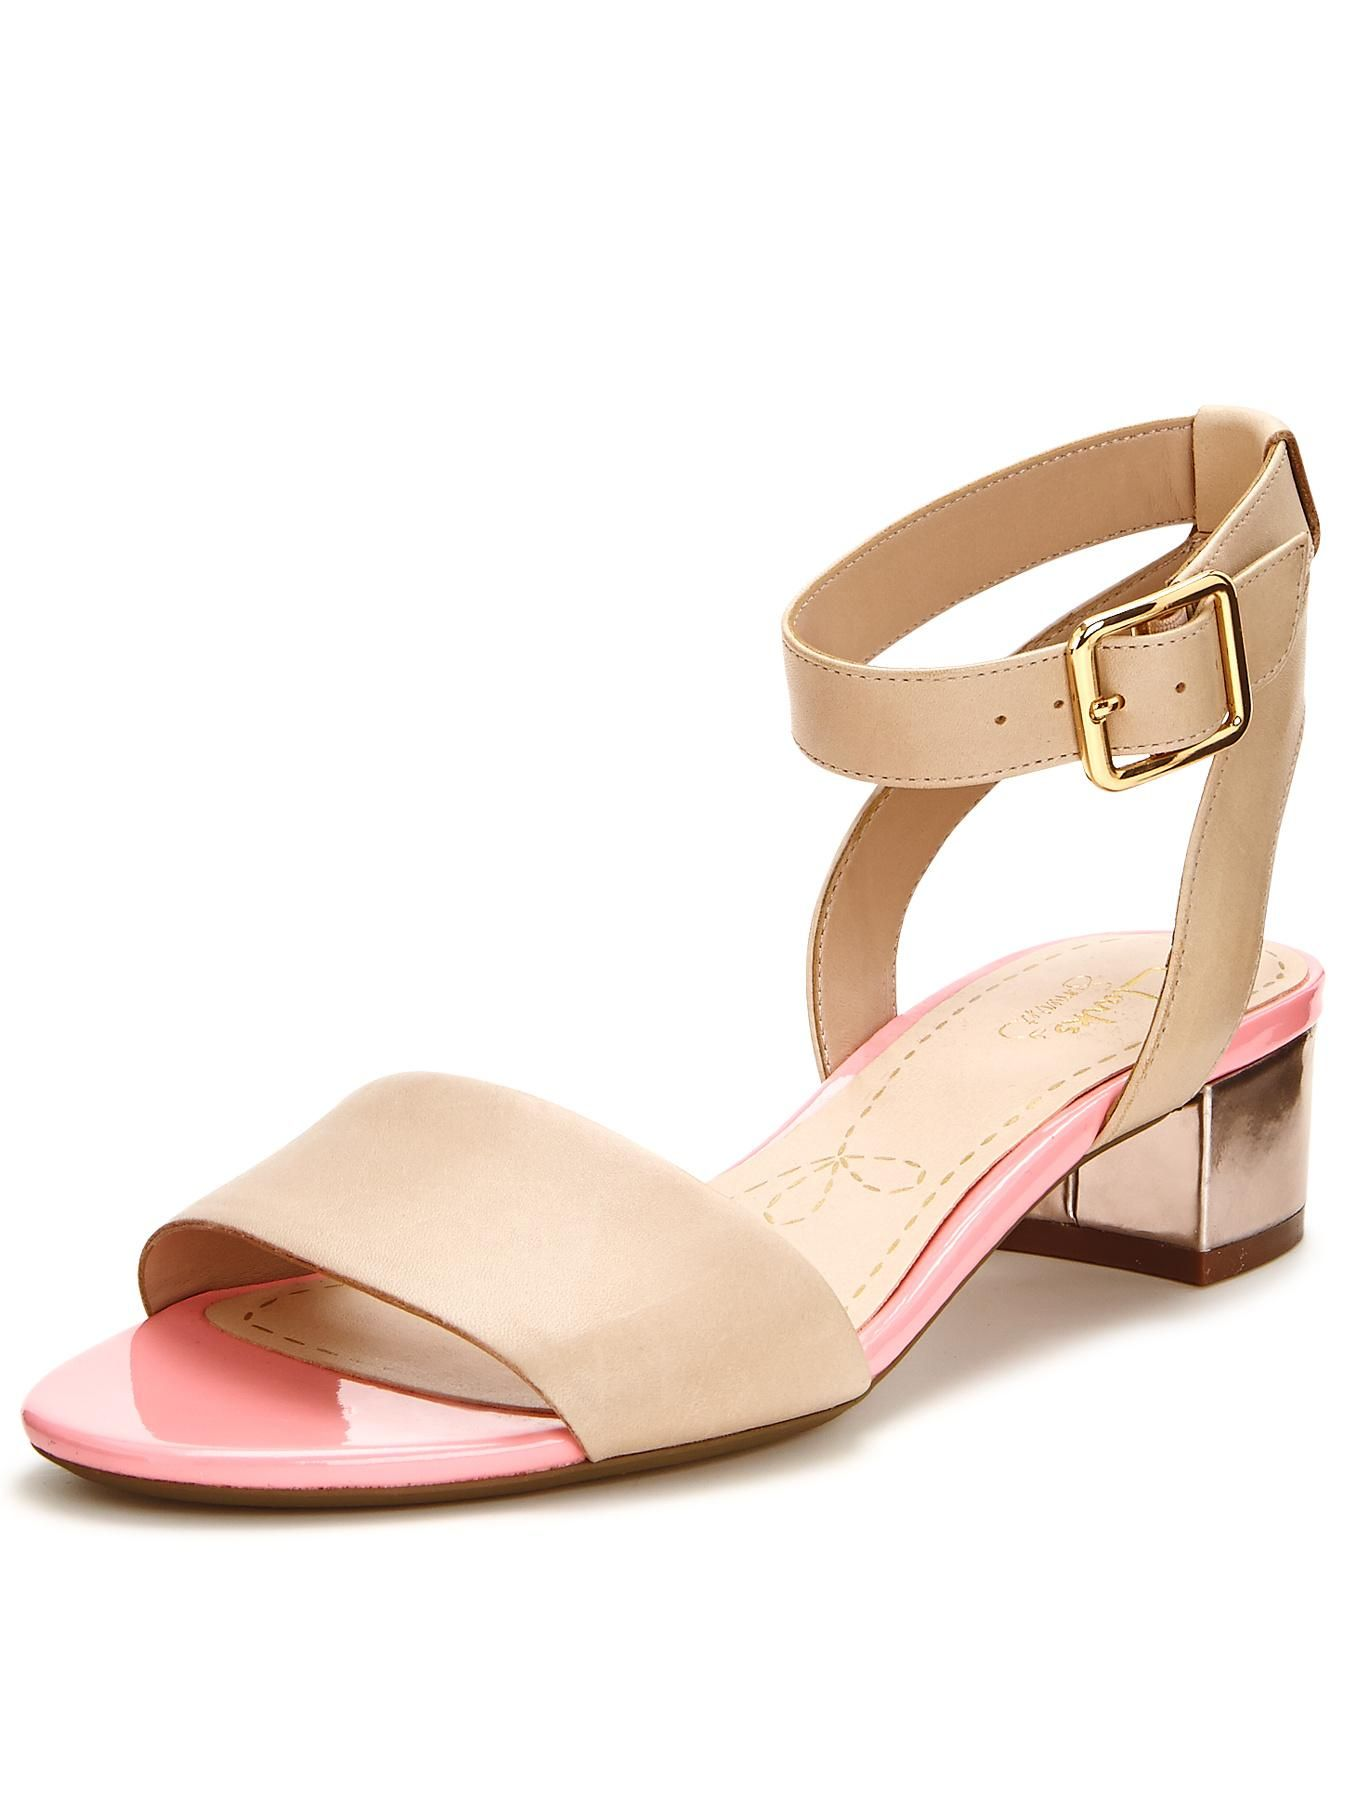 972b6bfd6afb Clarks Sharna Balcony Sandals - Oyster